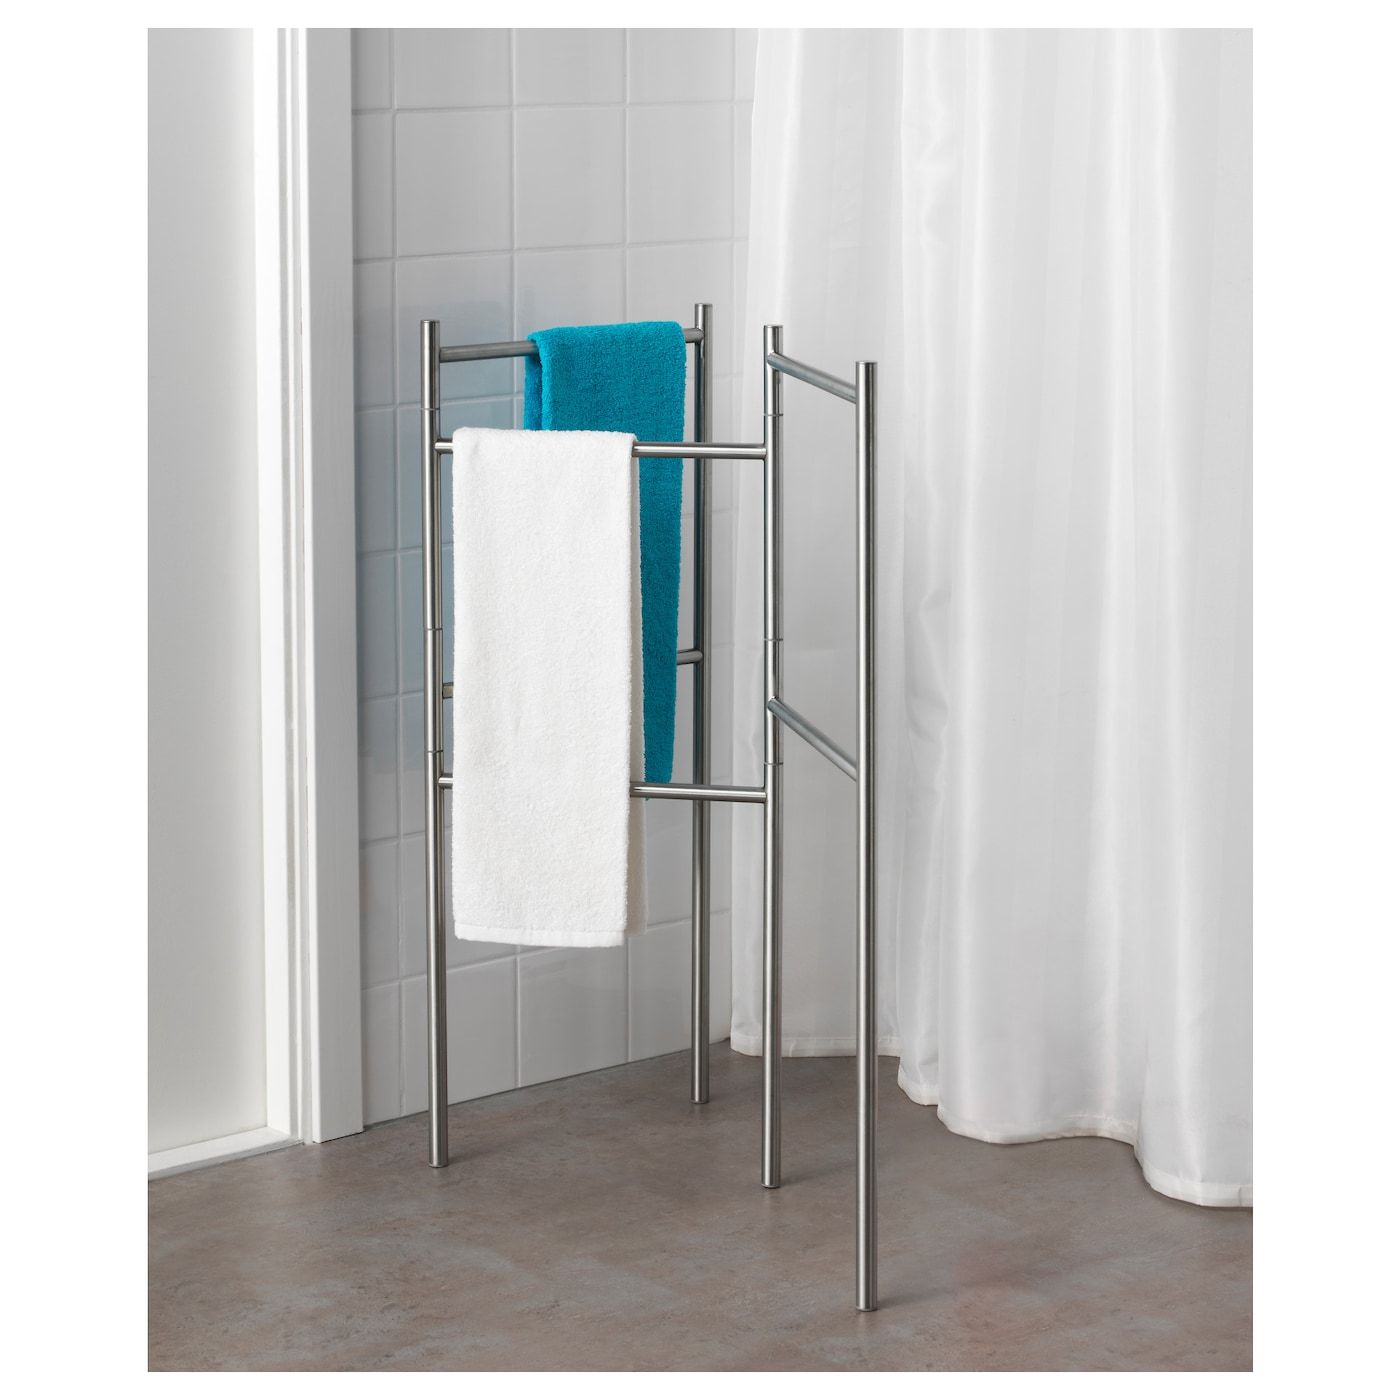 Grundtal towel stand stainless steel ikea Towel storage ideas ikea